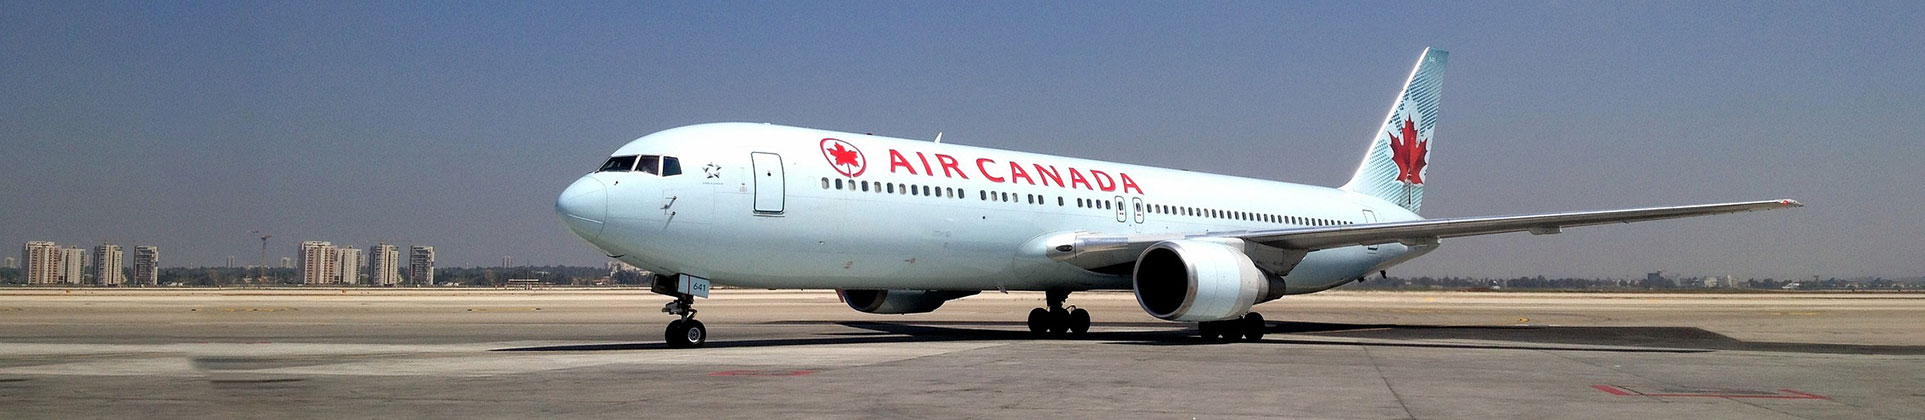 Air Canada Pet Travel